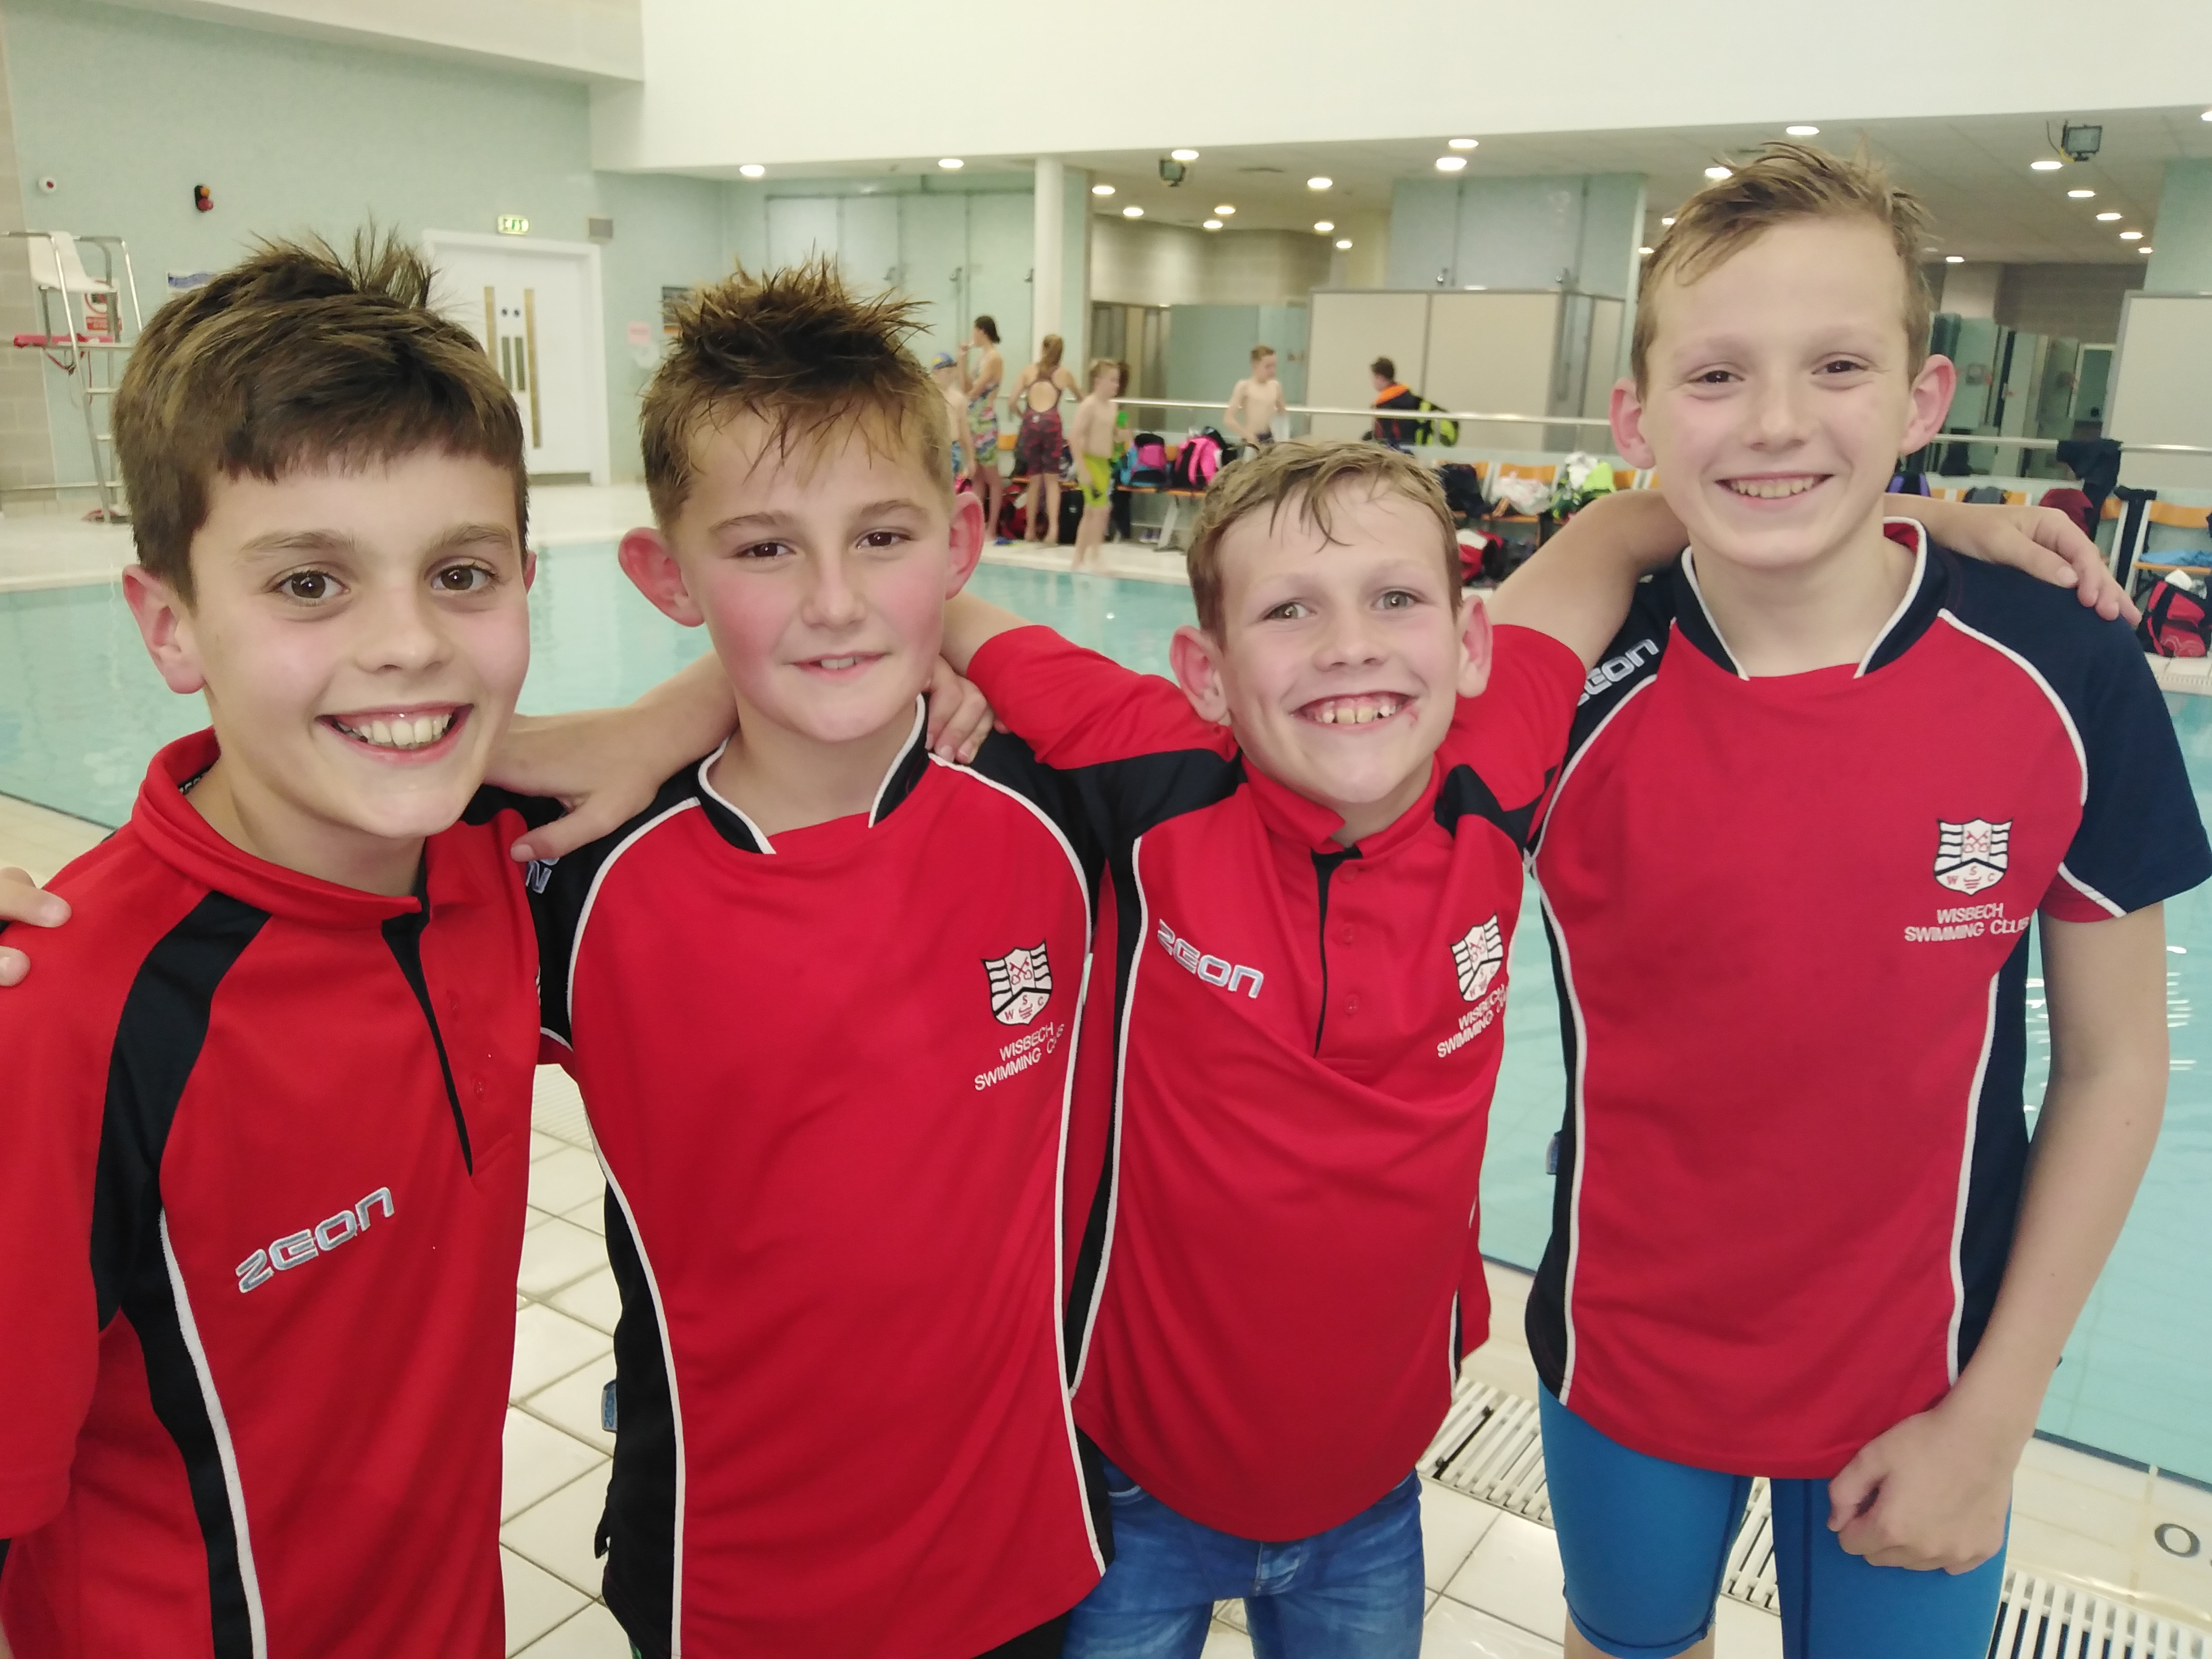 Well done to our boys 9 - 11relay team. Convincing 1st places in both the 4 x 50 freestyle relay and the 4 x 50 medley relay